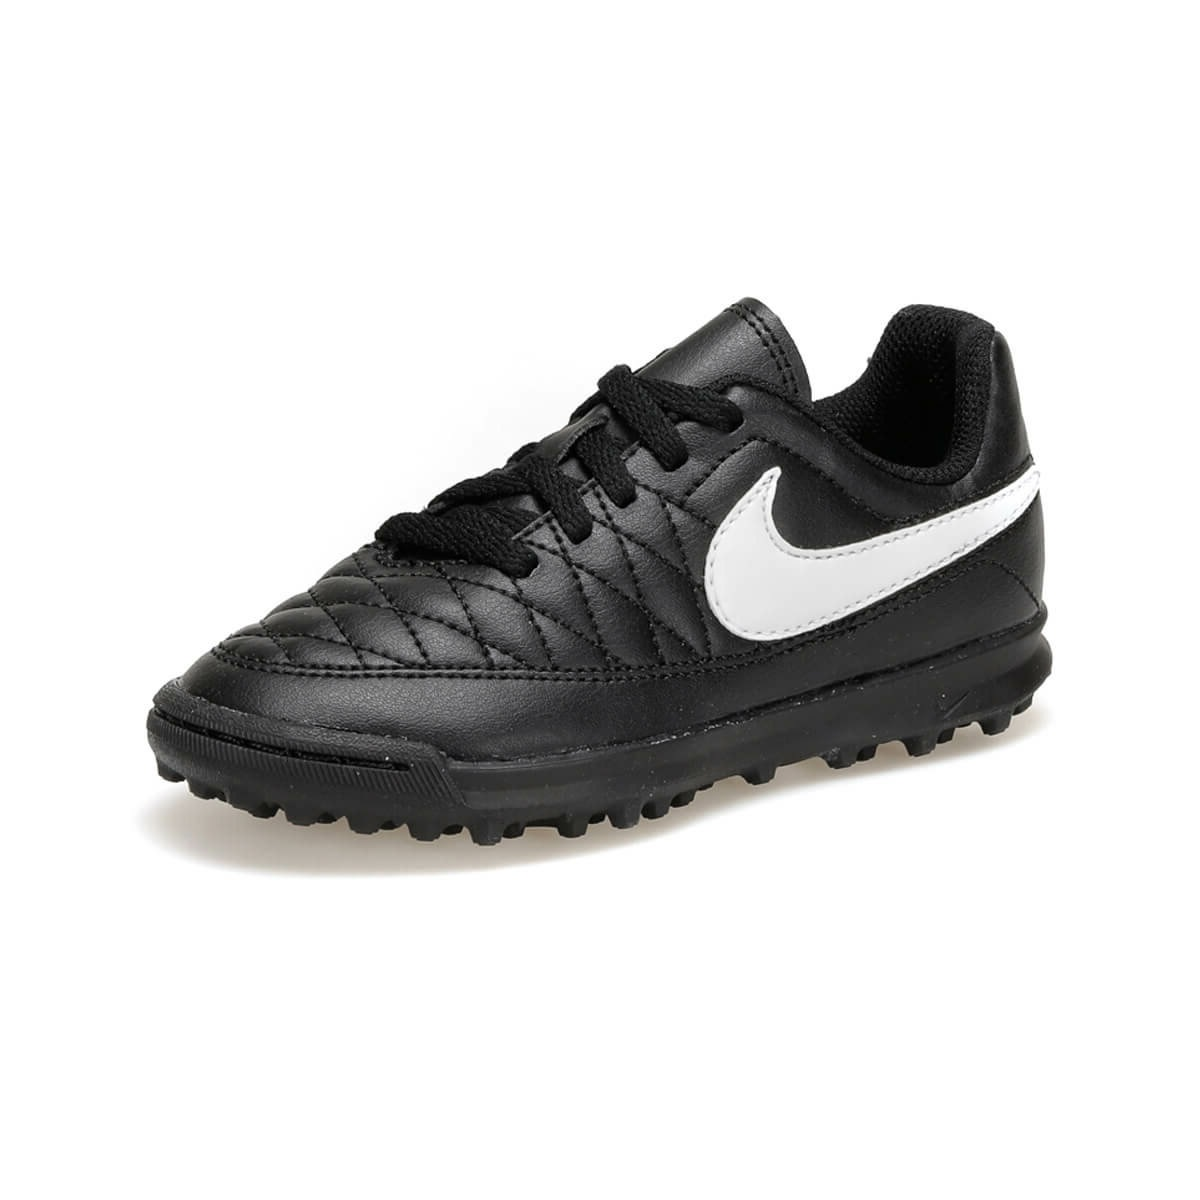 NIKE MAJESTRY TF AQ7896-017 JR